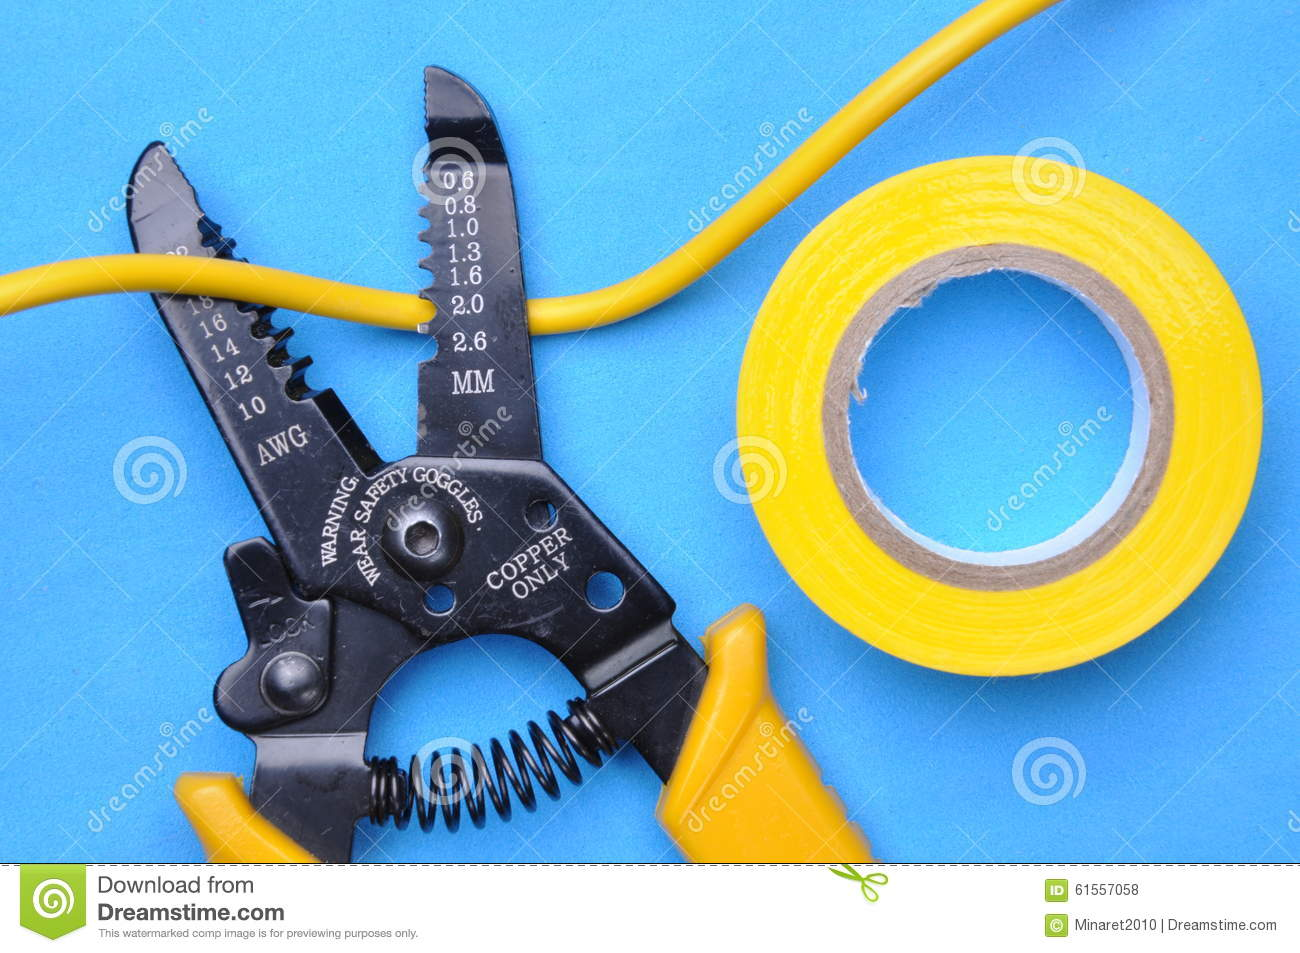 Wire Stripper, Insulation Tape And Cable Stock Photo - Image